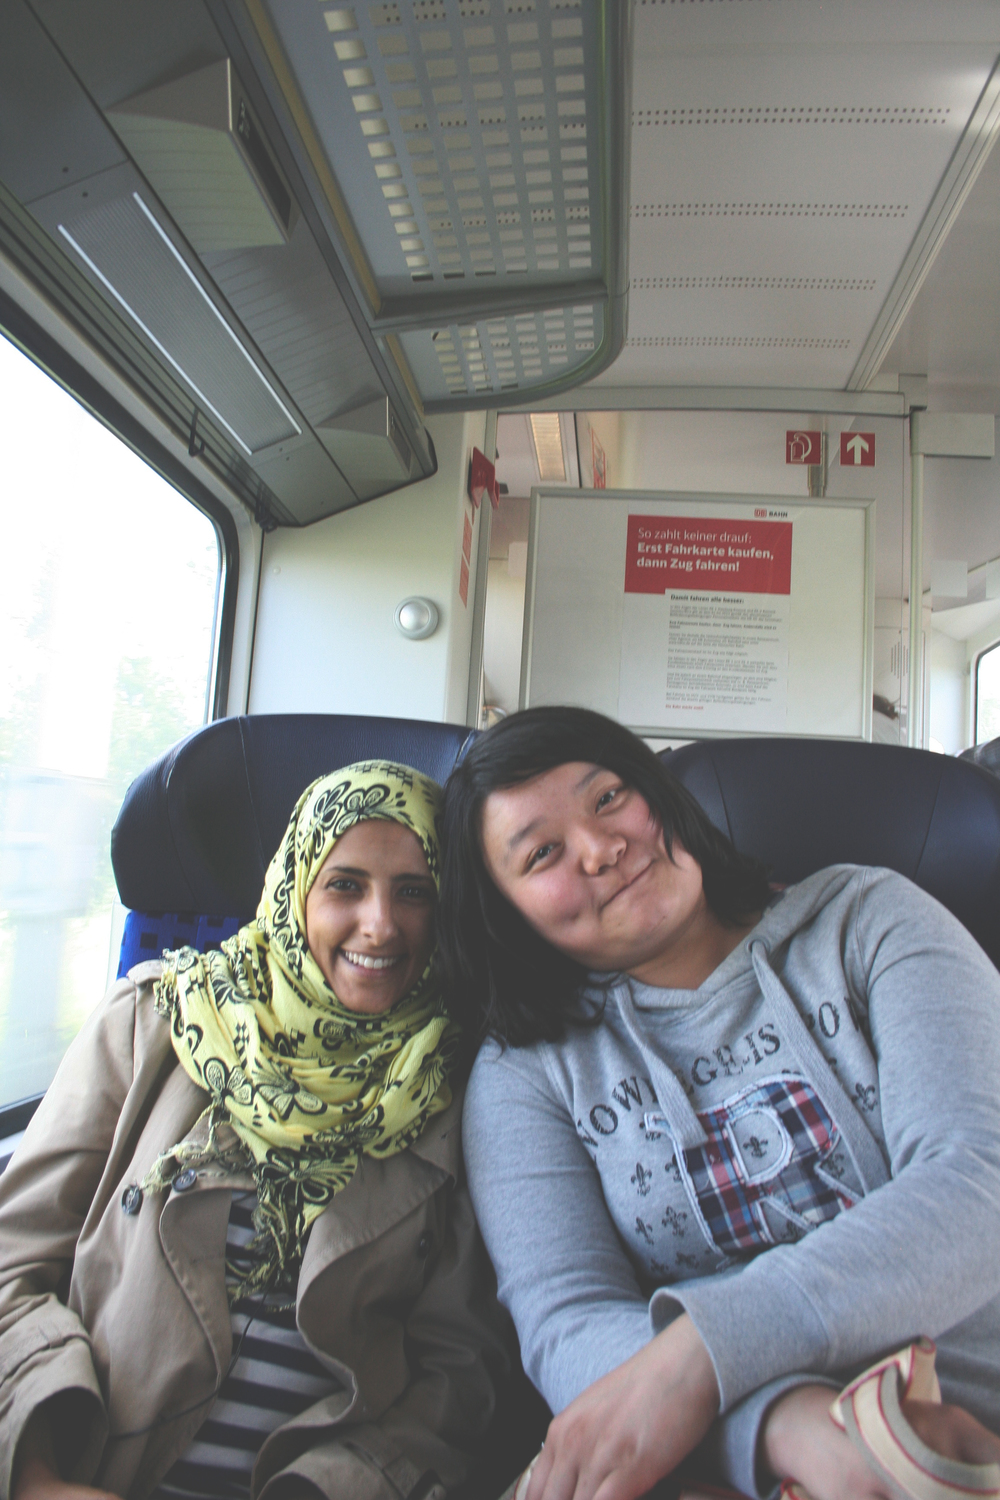 My friends from class on the way back from Schwerin!